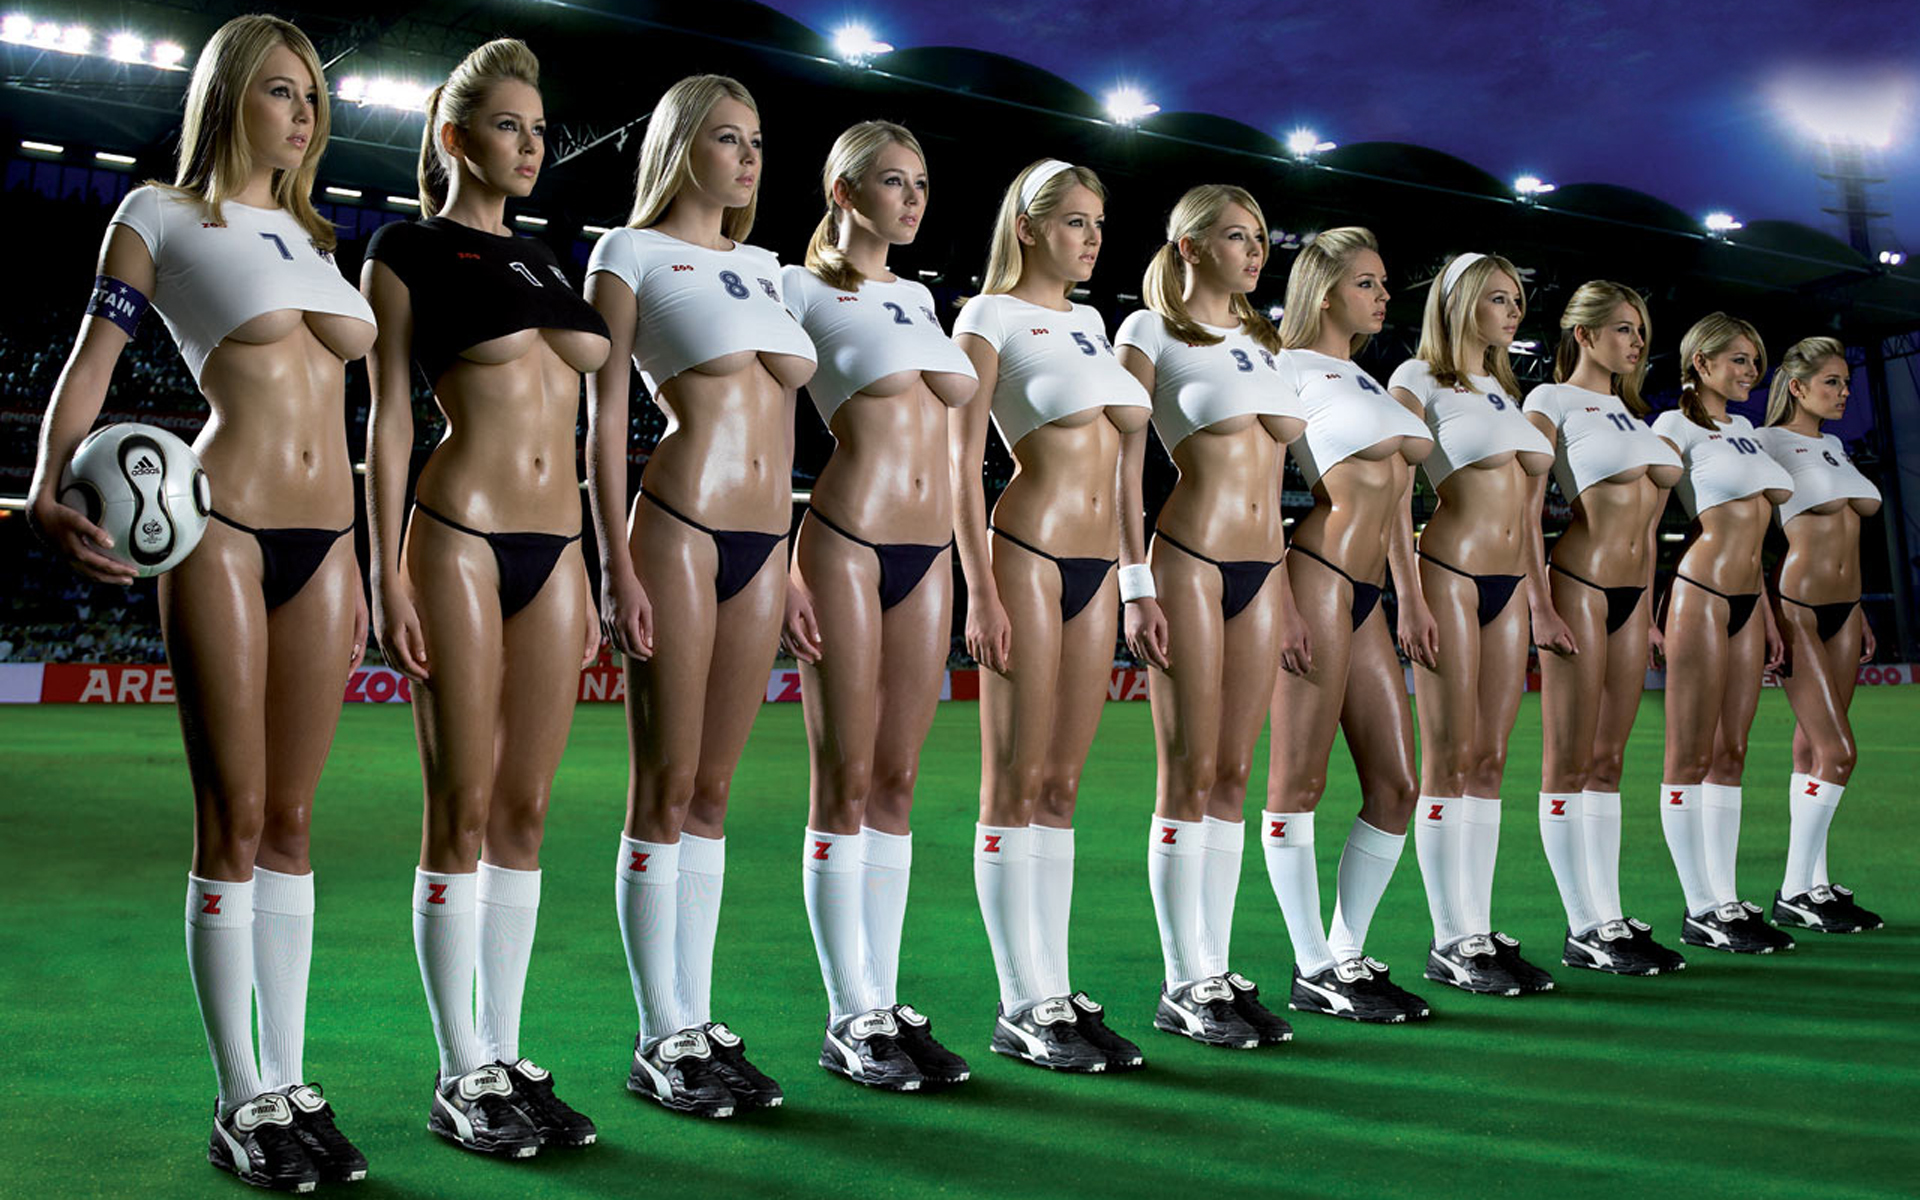 football_girls_team2_widescreen.jpg